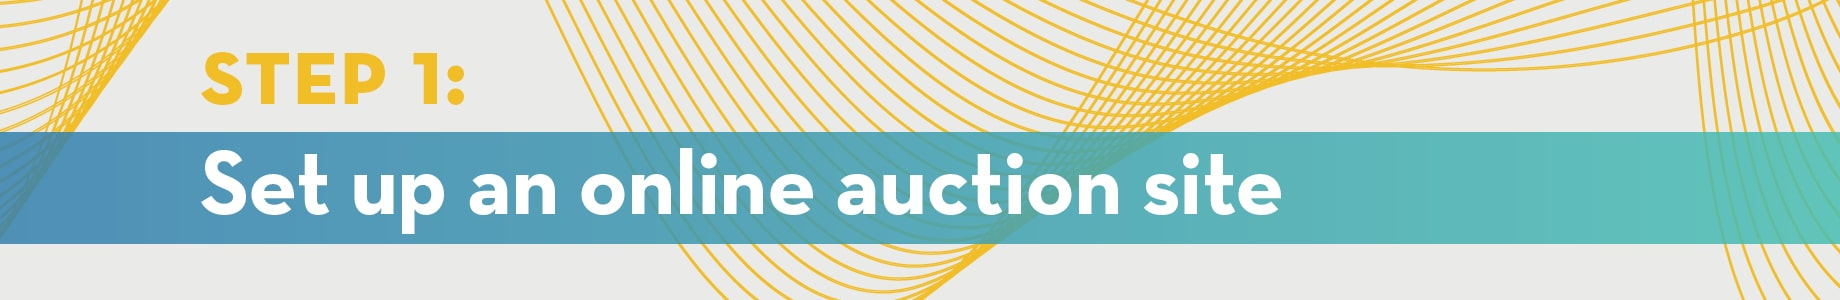 Step 1: Set up an online auction site